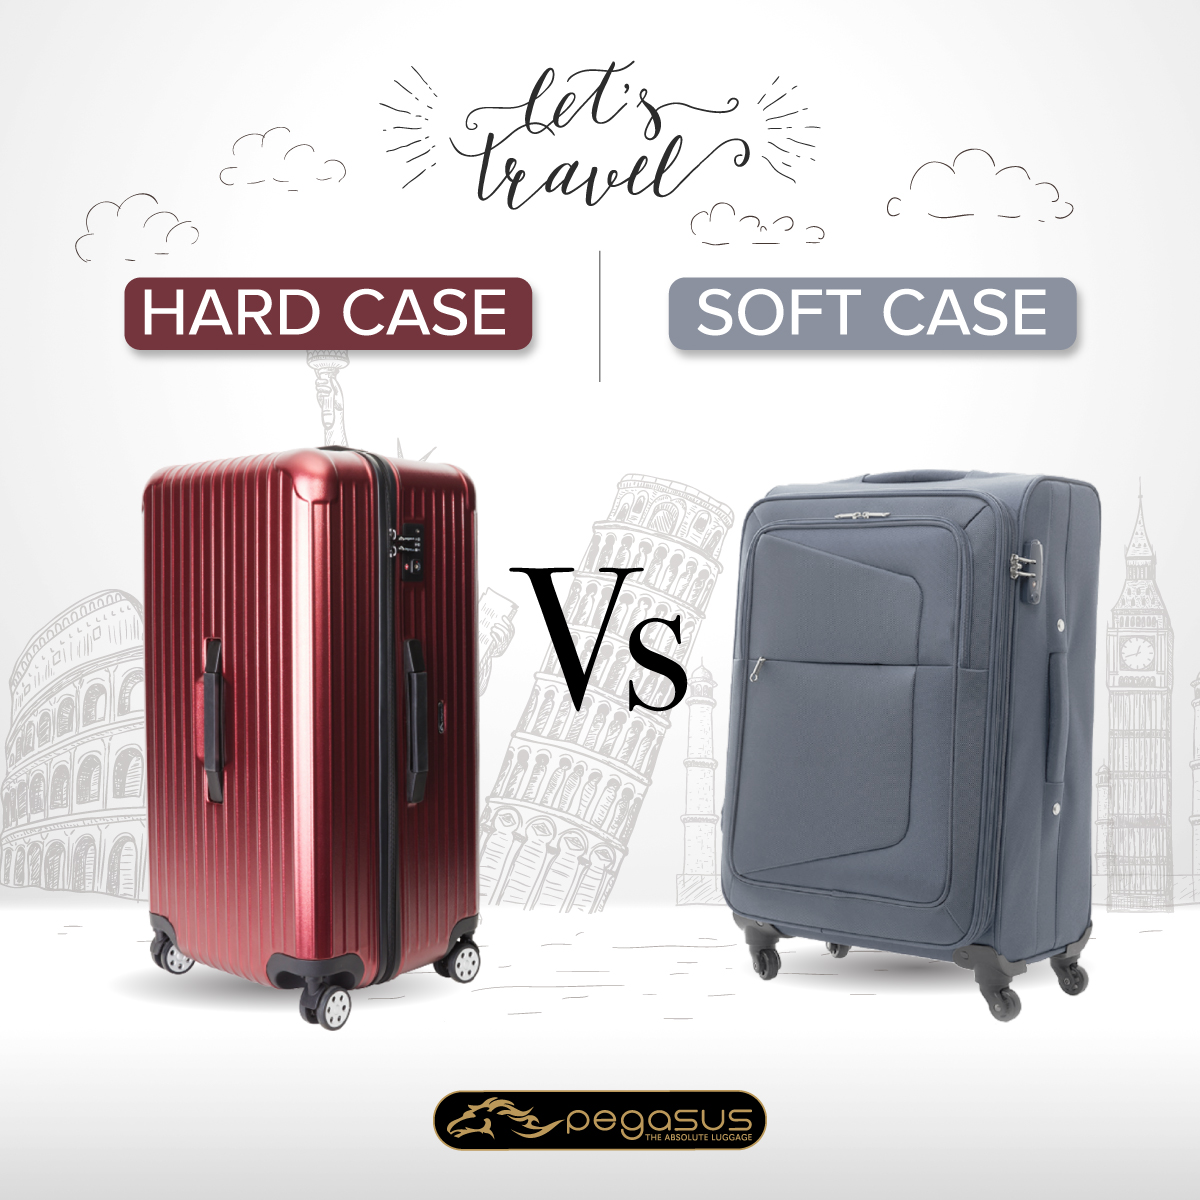 Hard case VS Soft case